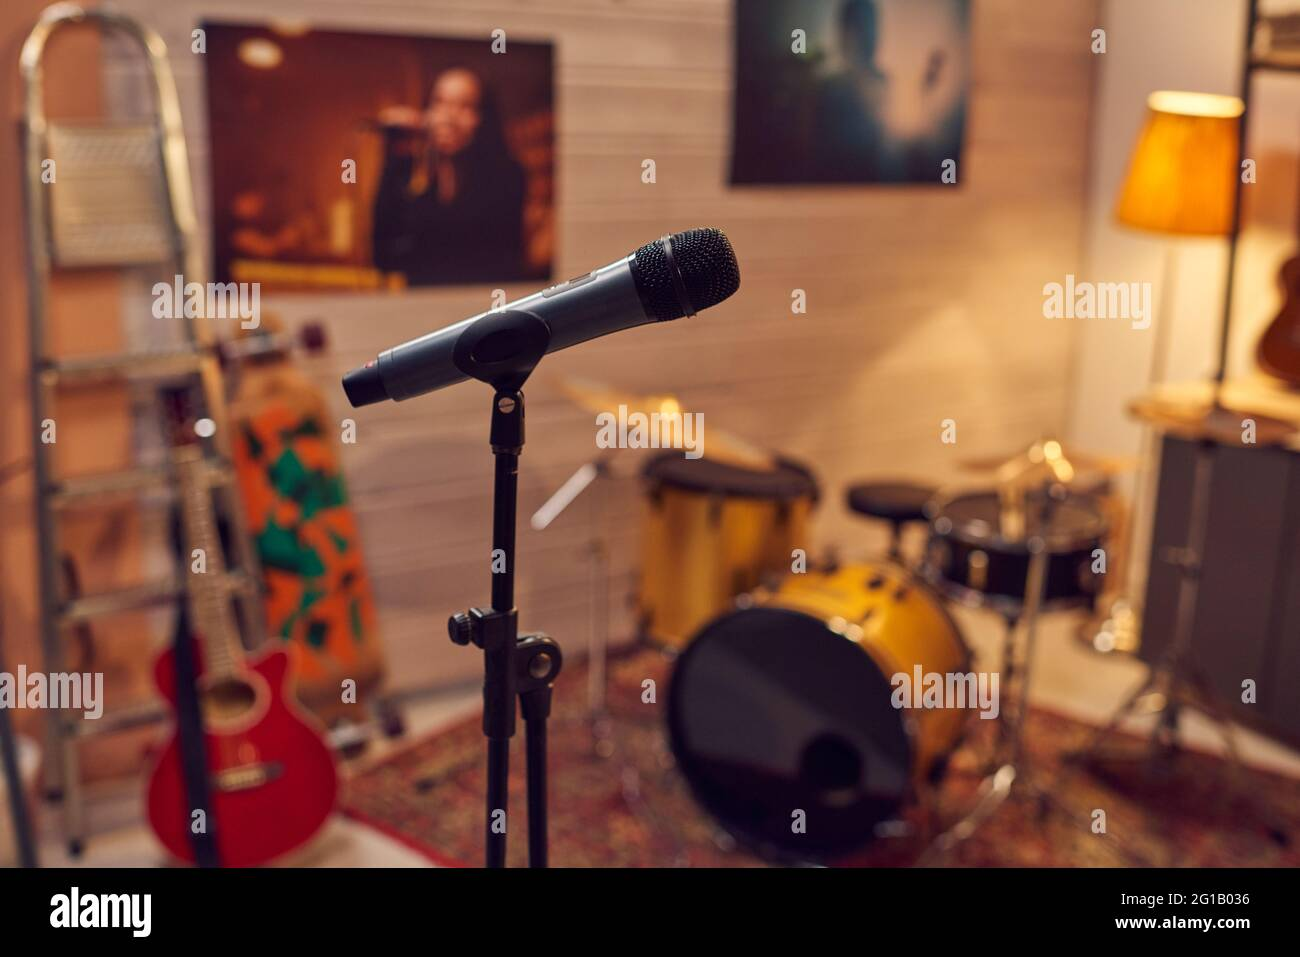 Microphone among musical instruments in sound recording studio Stock Photo